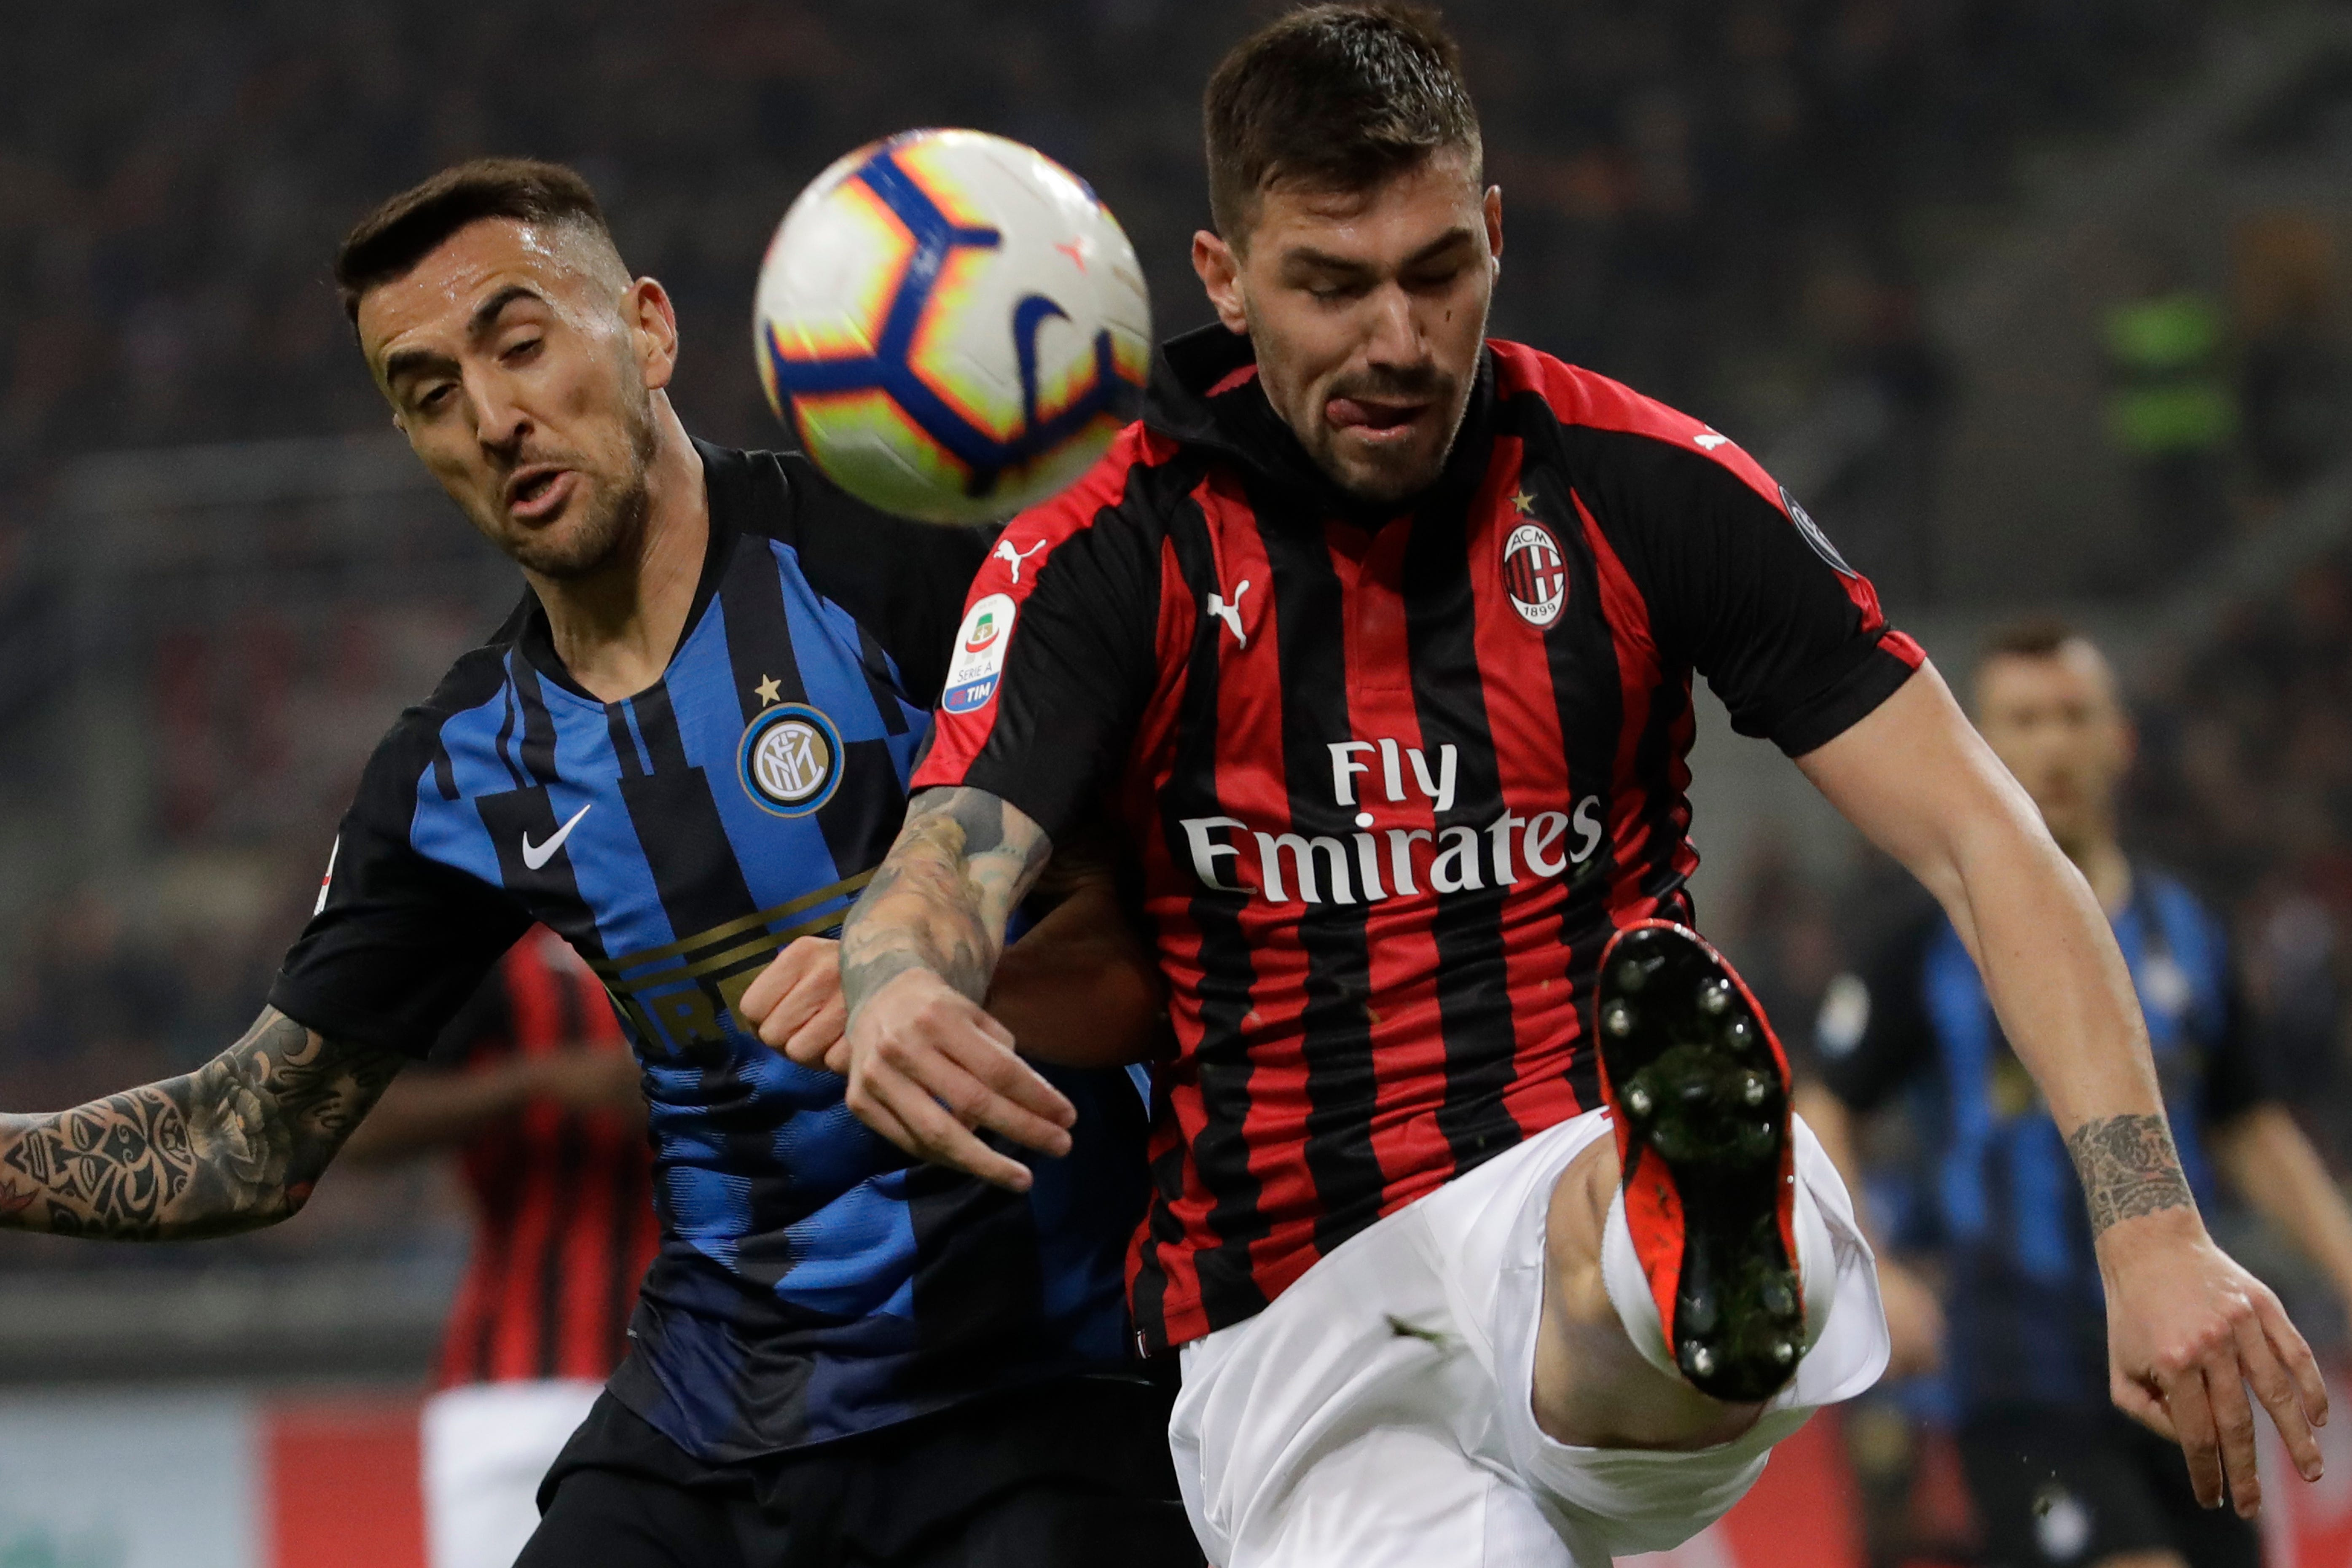 Milan players fight among themselves during loss to Inter